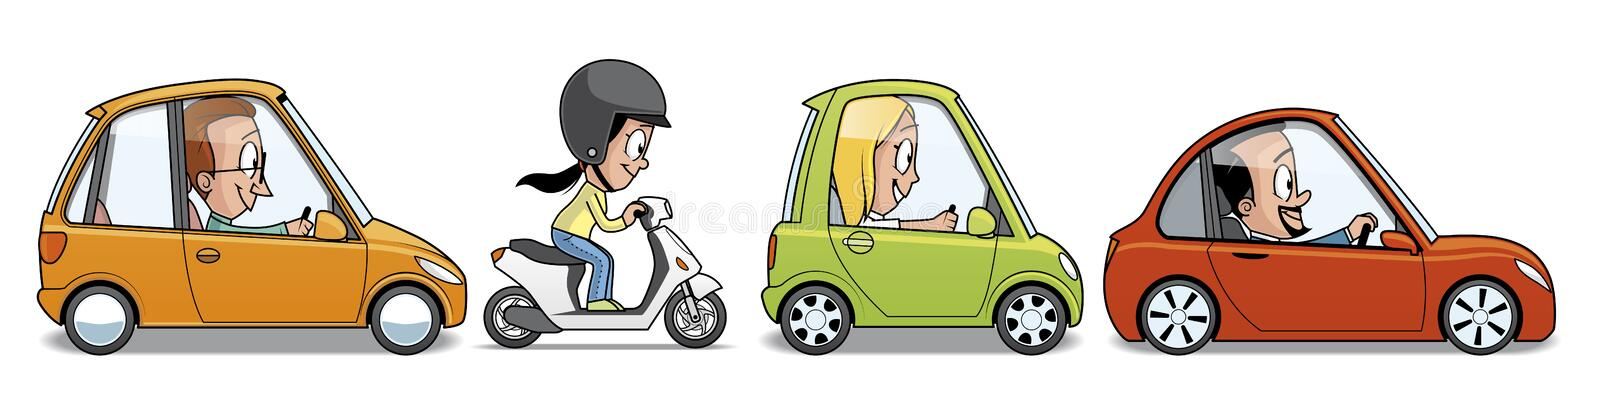 Group of vehicles stock illustration